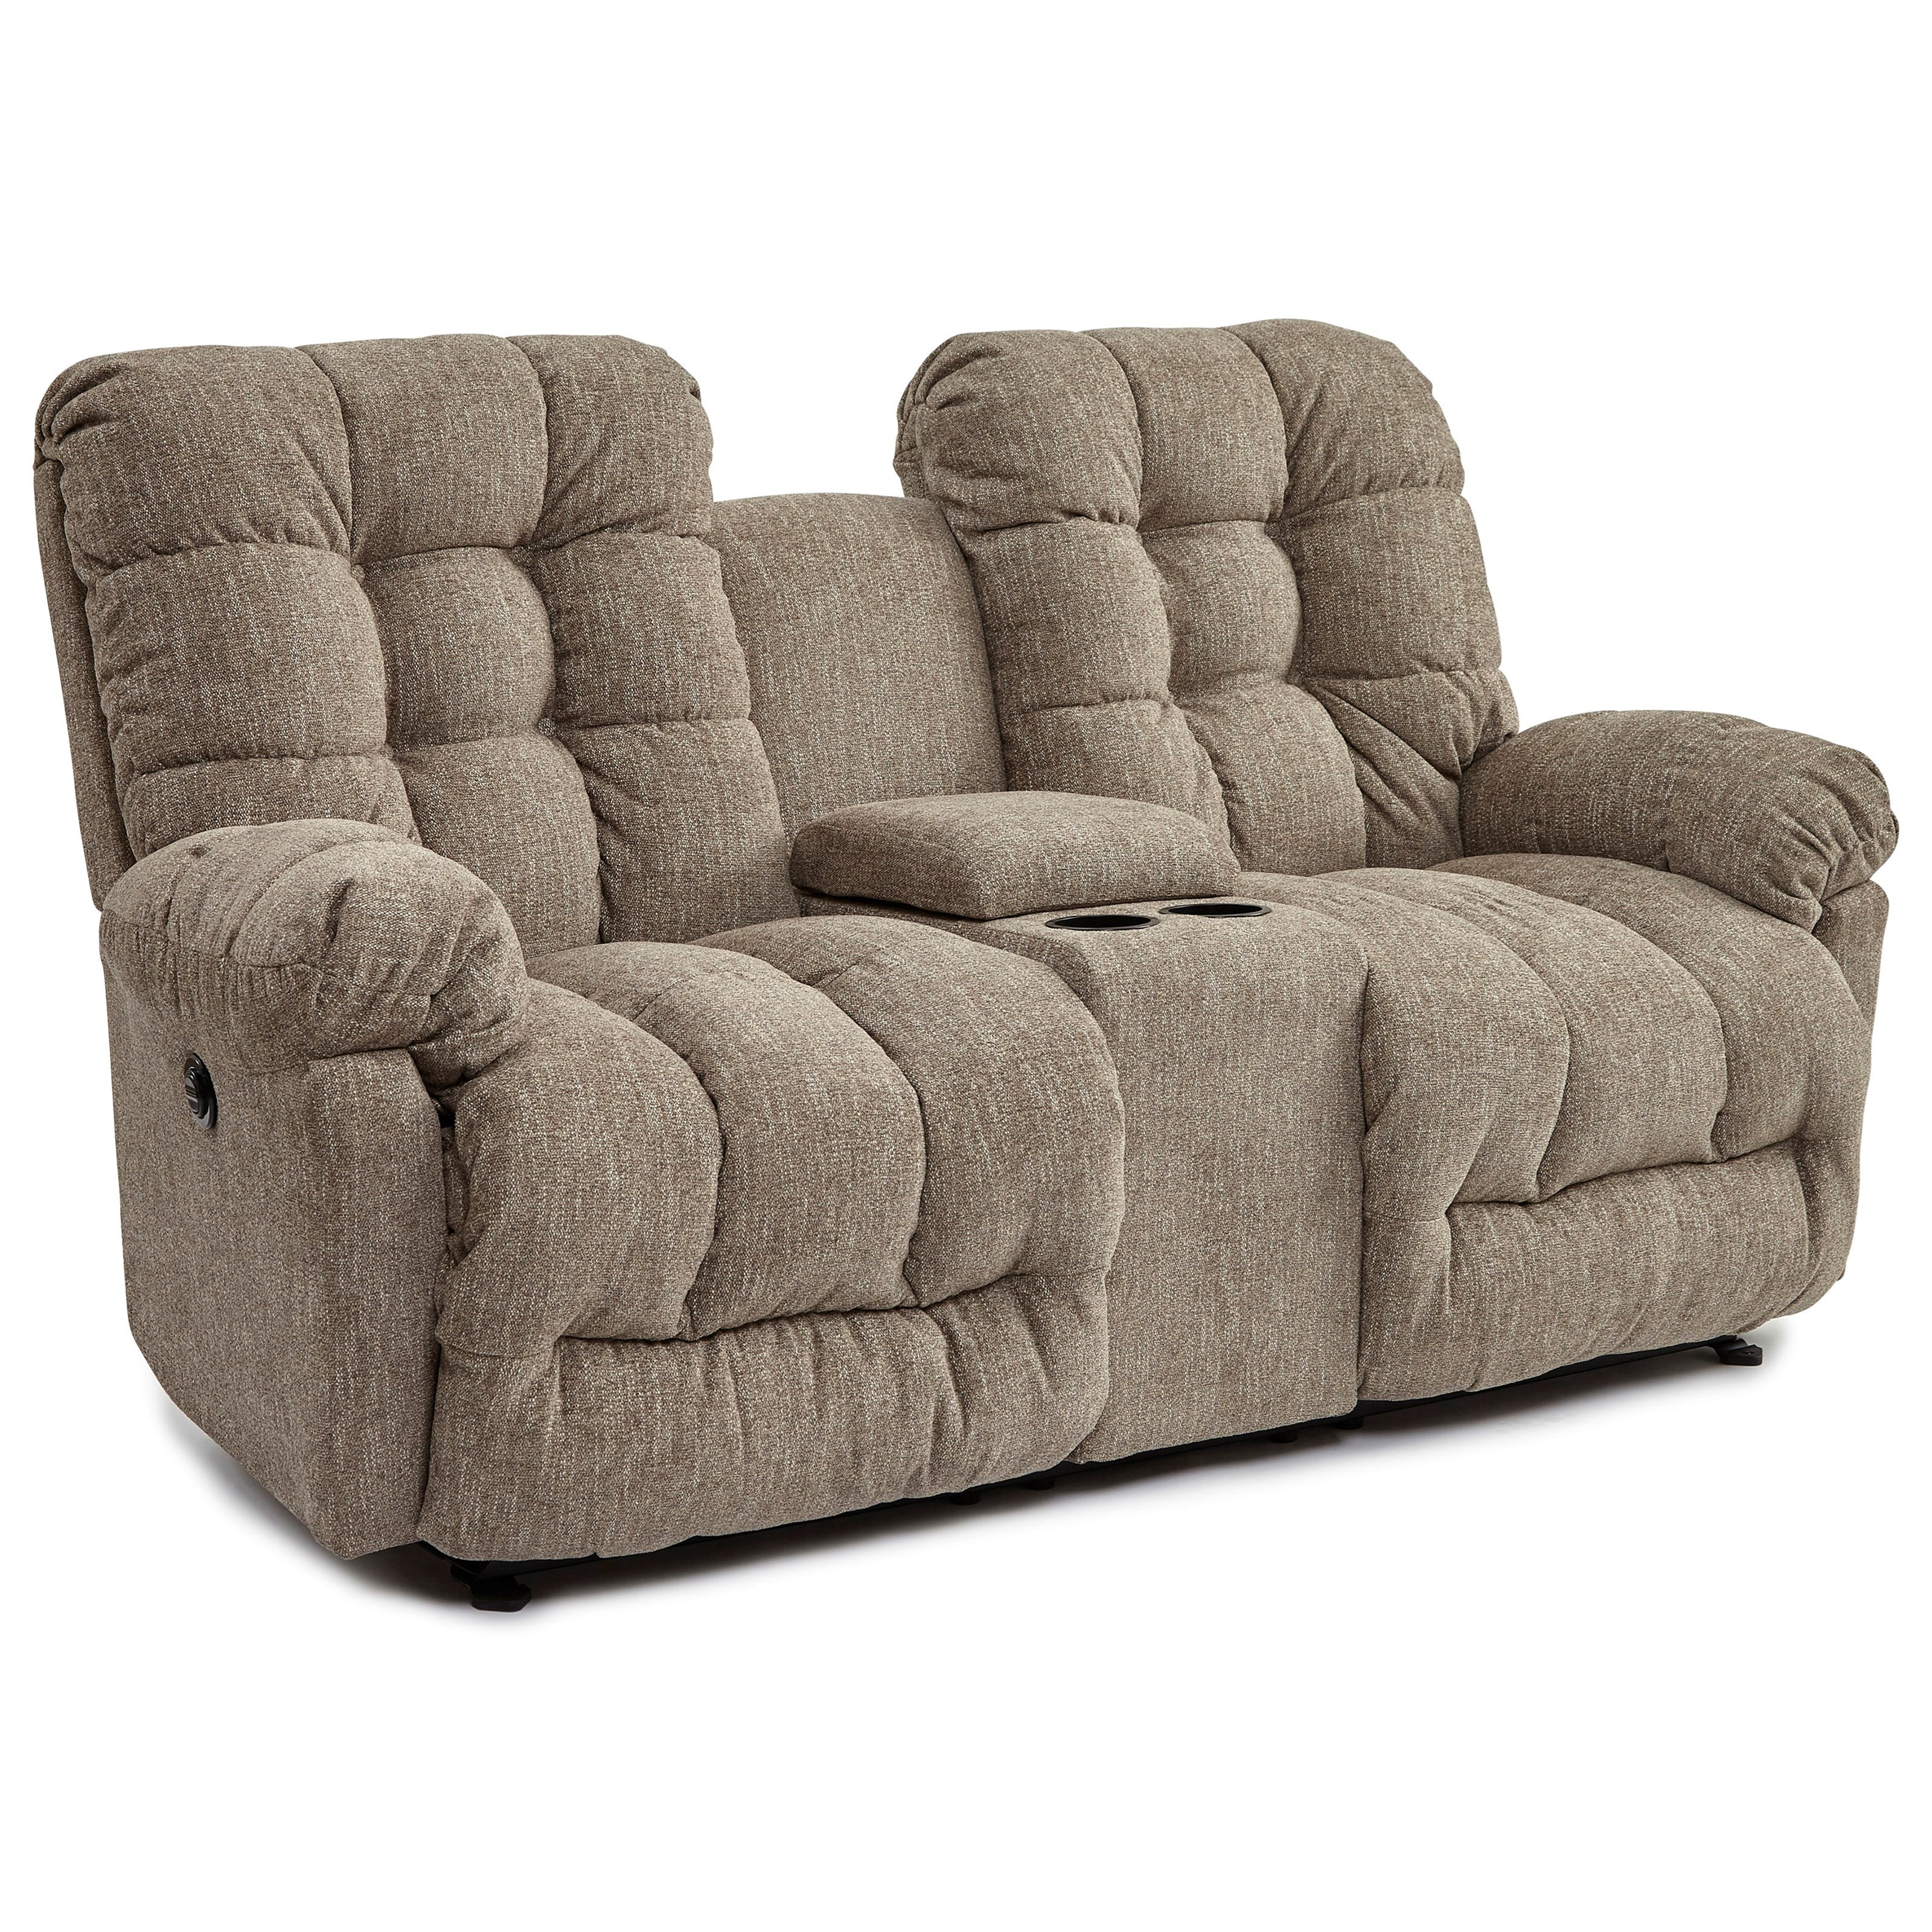 Everlasting Pwr Rock Recl Love w/ Pwr Headrest & Consol  by Best Home Furnishings at Baer's Furniture